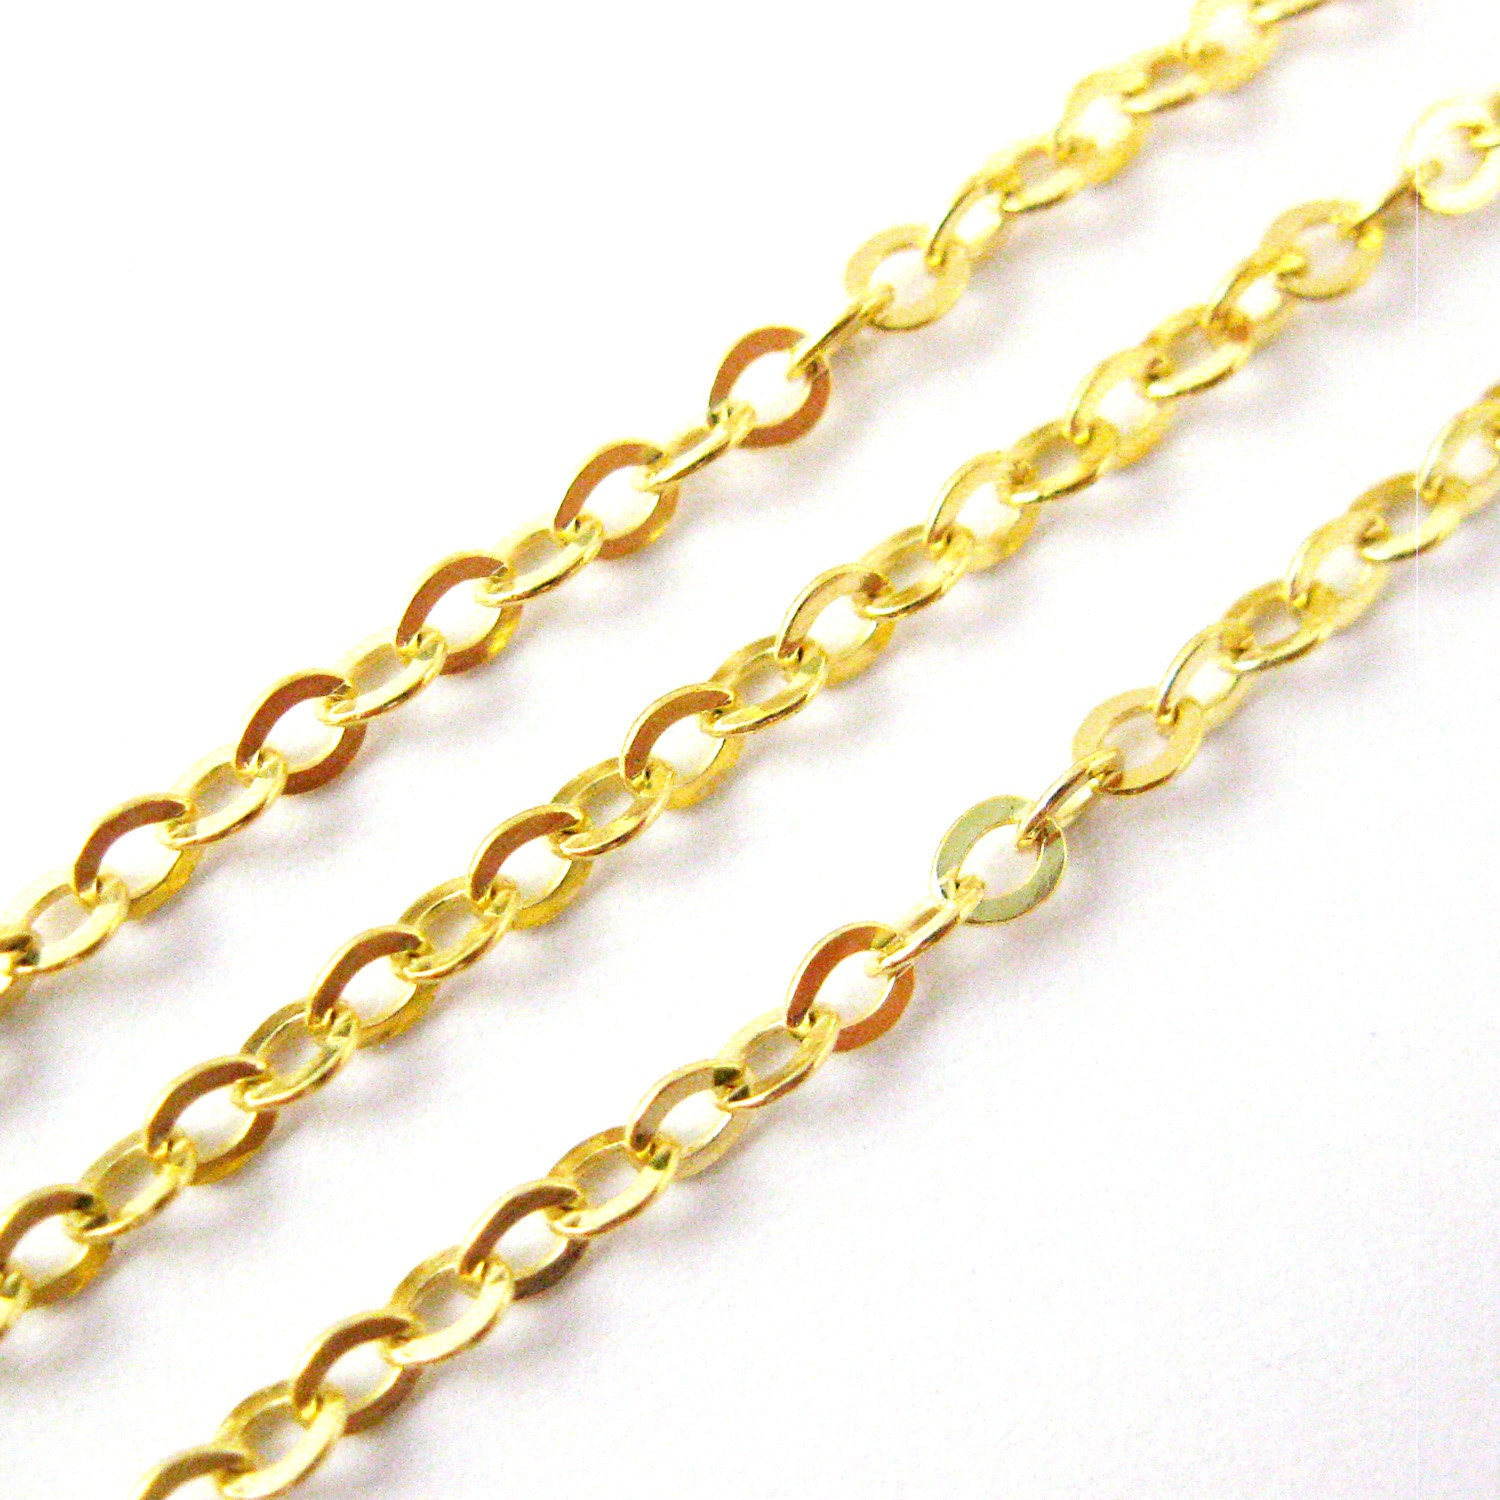 Gold chain 22k gold plated sterling silver vermeil for Bulk jewelry chain canada